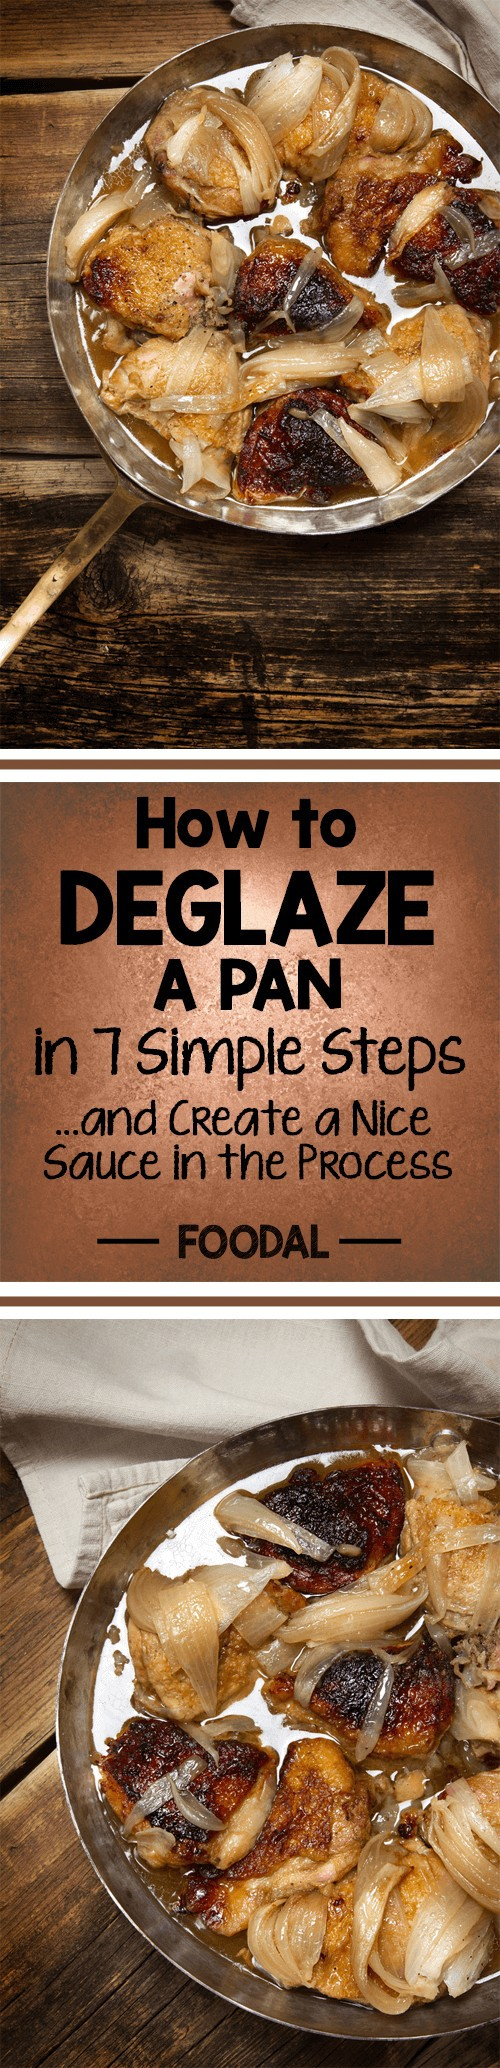 Deglazing is about using every bit of flavor left in the pan to add deliciousness to a dish. But what does it really involve? It's not a secret that's just for chefs! Click here and learn to make magic with just a few ingredients in your kitchen – and create sensational deglazed pan sauces with Foodal's quick and simple techniques. We'll teach you how to serve up a flavorful pan sauce in 3 minutes, from pan to table. https://foodal.com/knowledge/how-to/deglaze-a-pan/